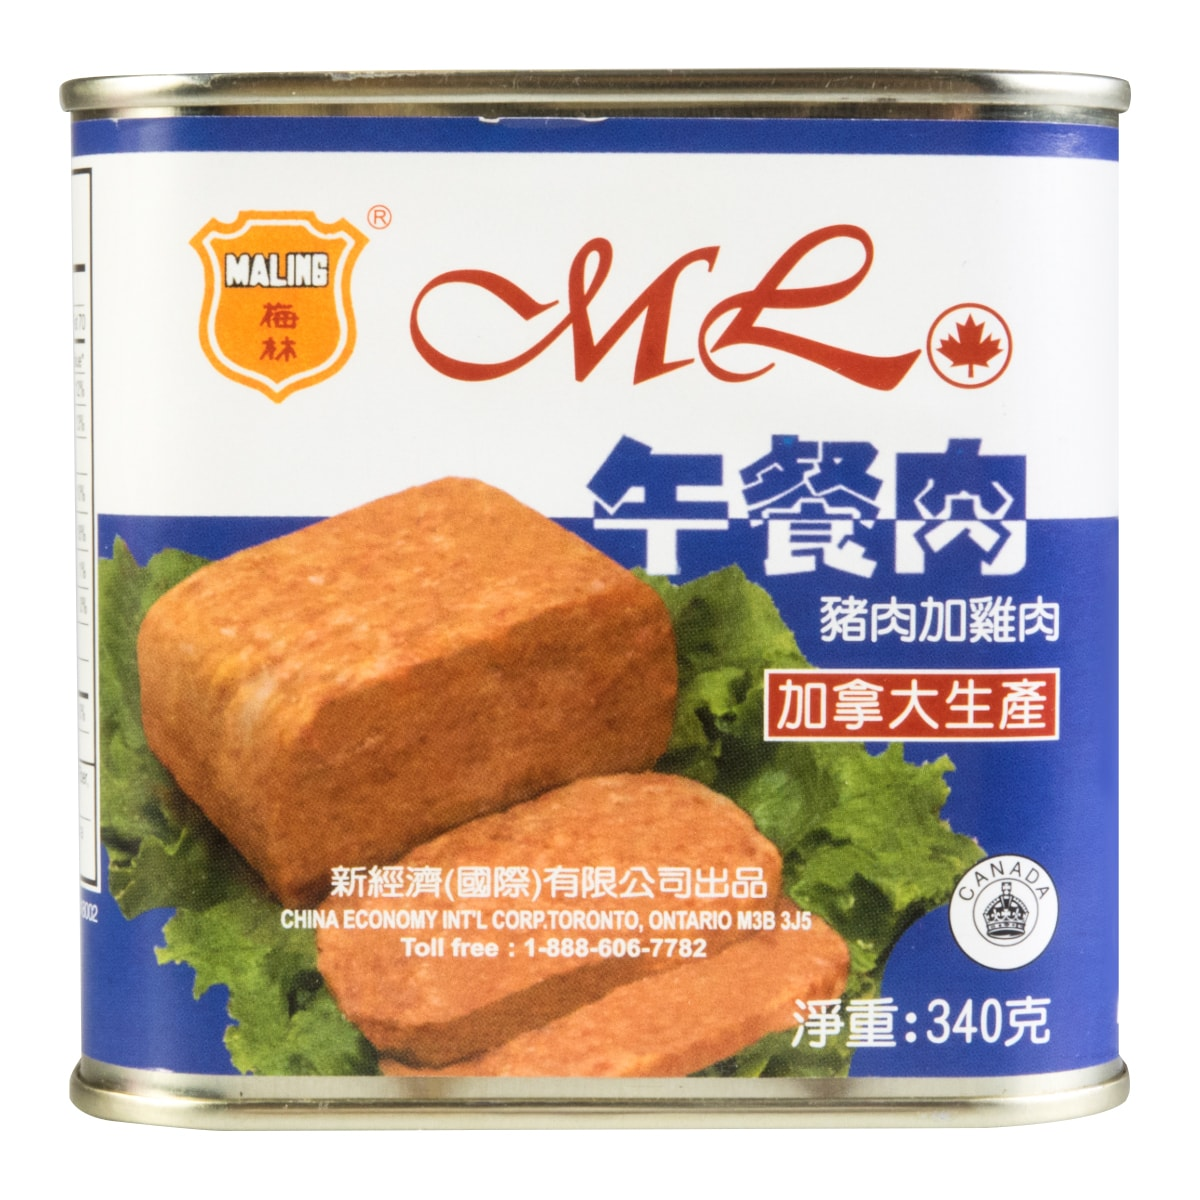 MALING luncheon loaf 340g